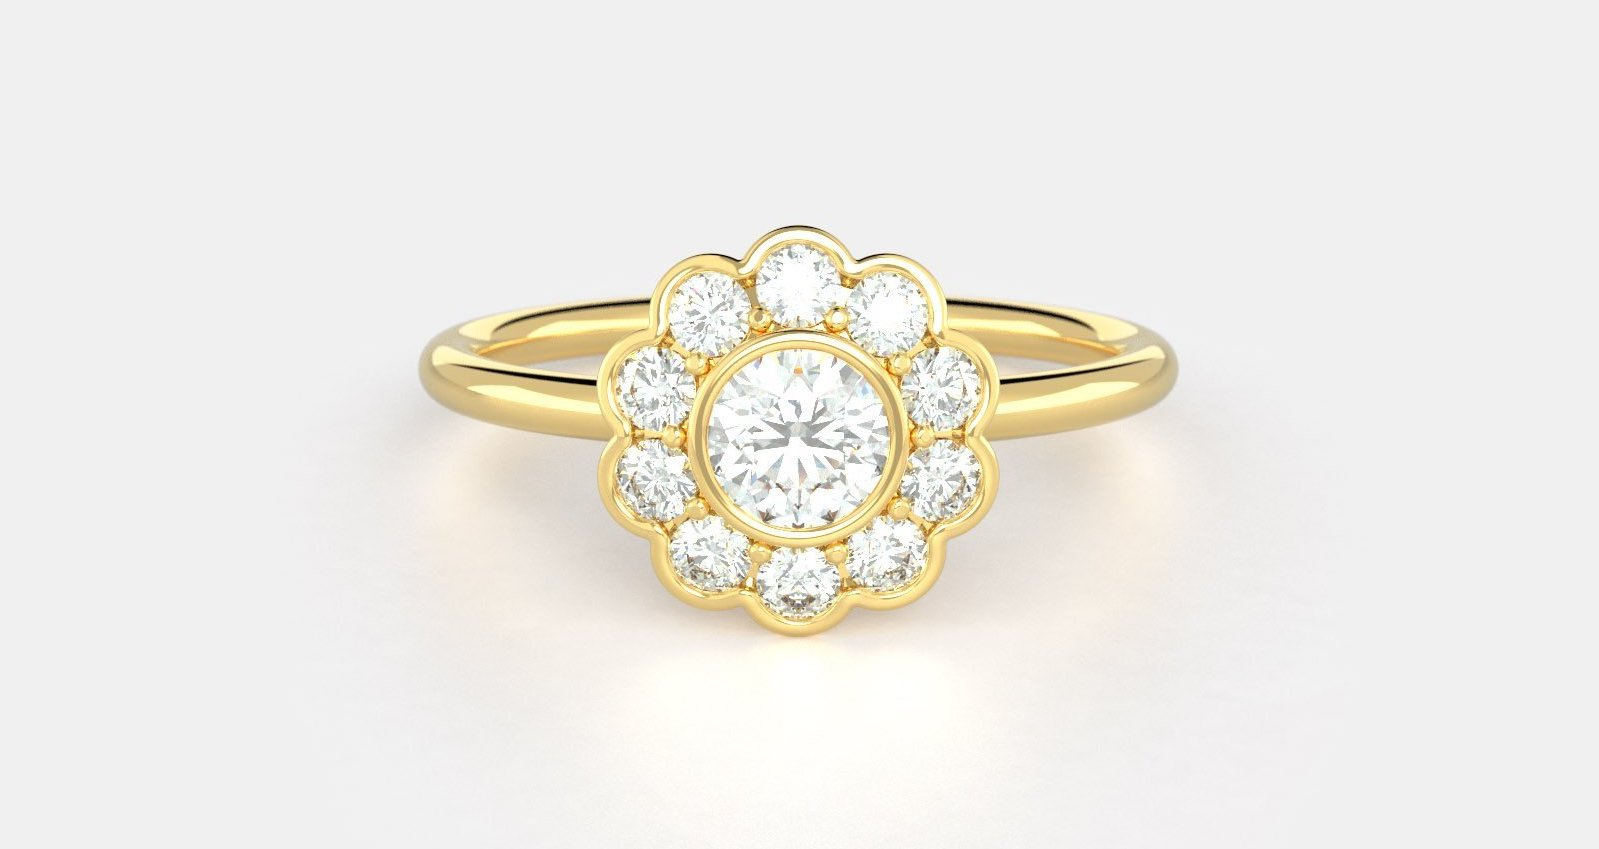 A cluster diamond ring in yellow gold